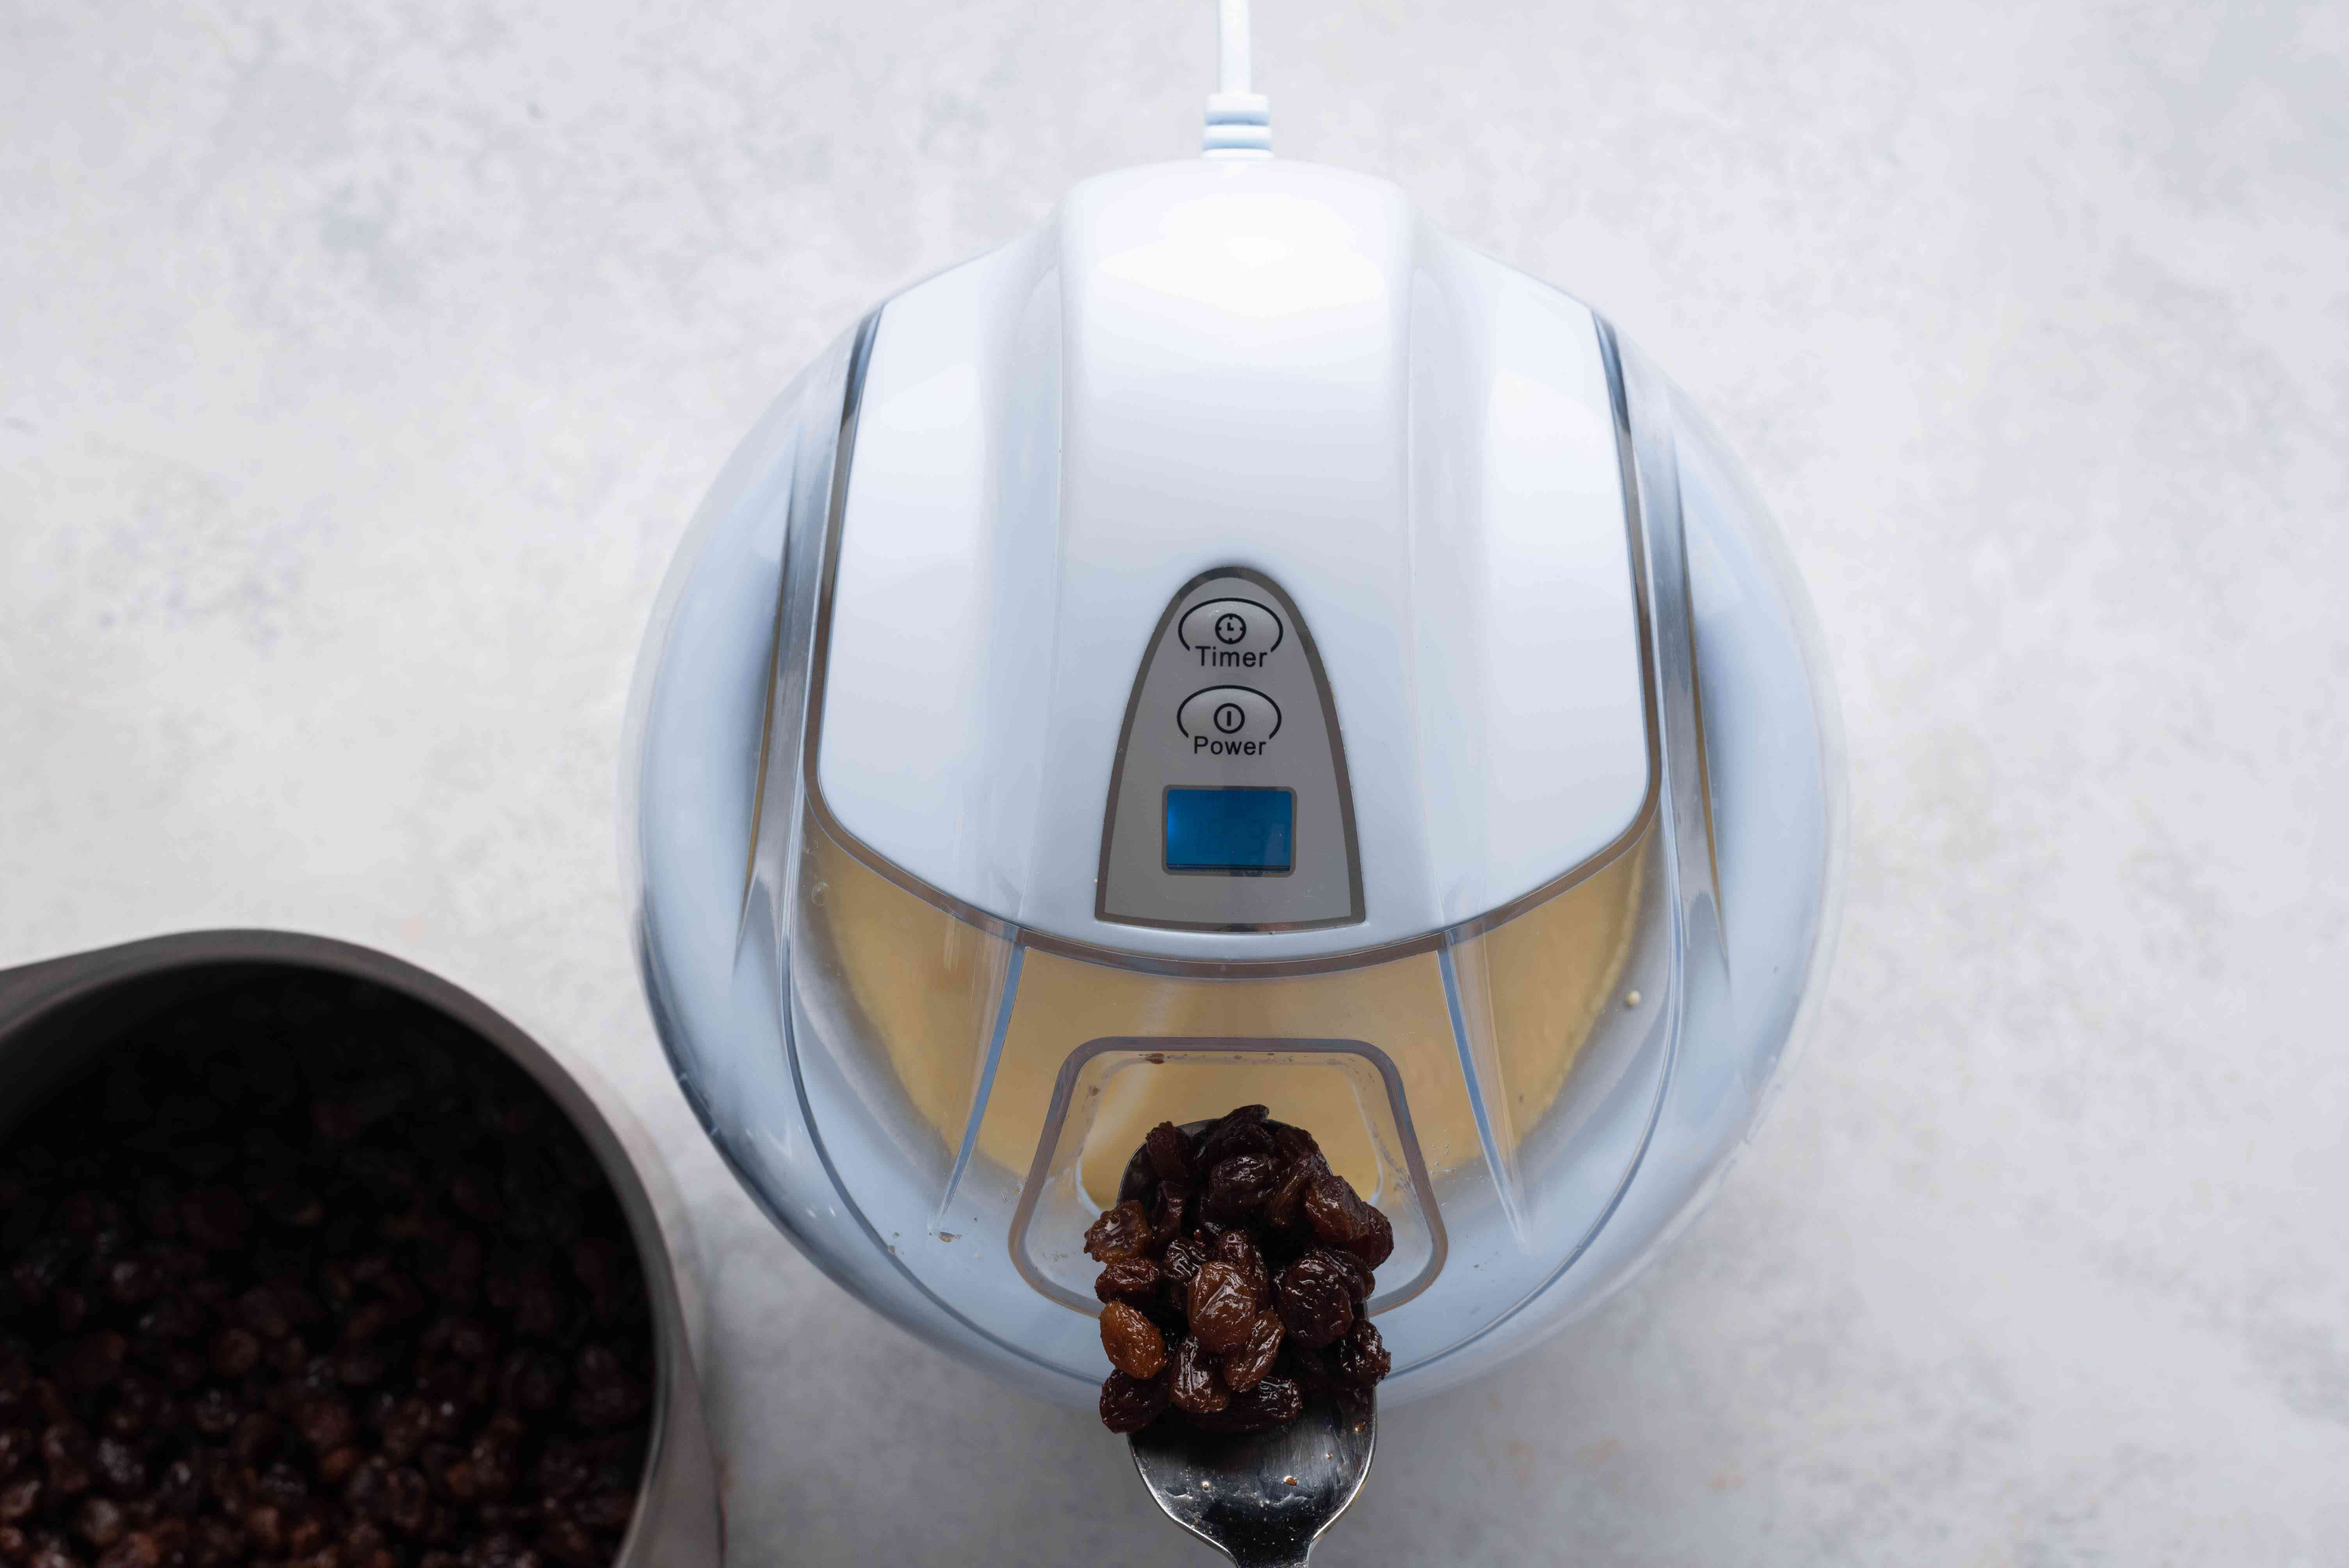 Add the soaked raisins to the ice cream maker